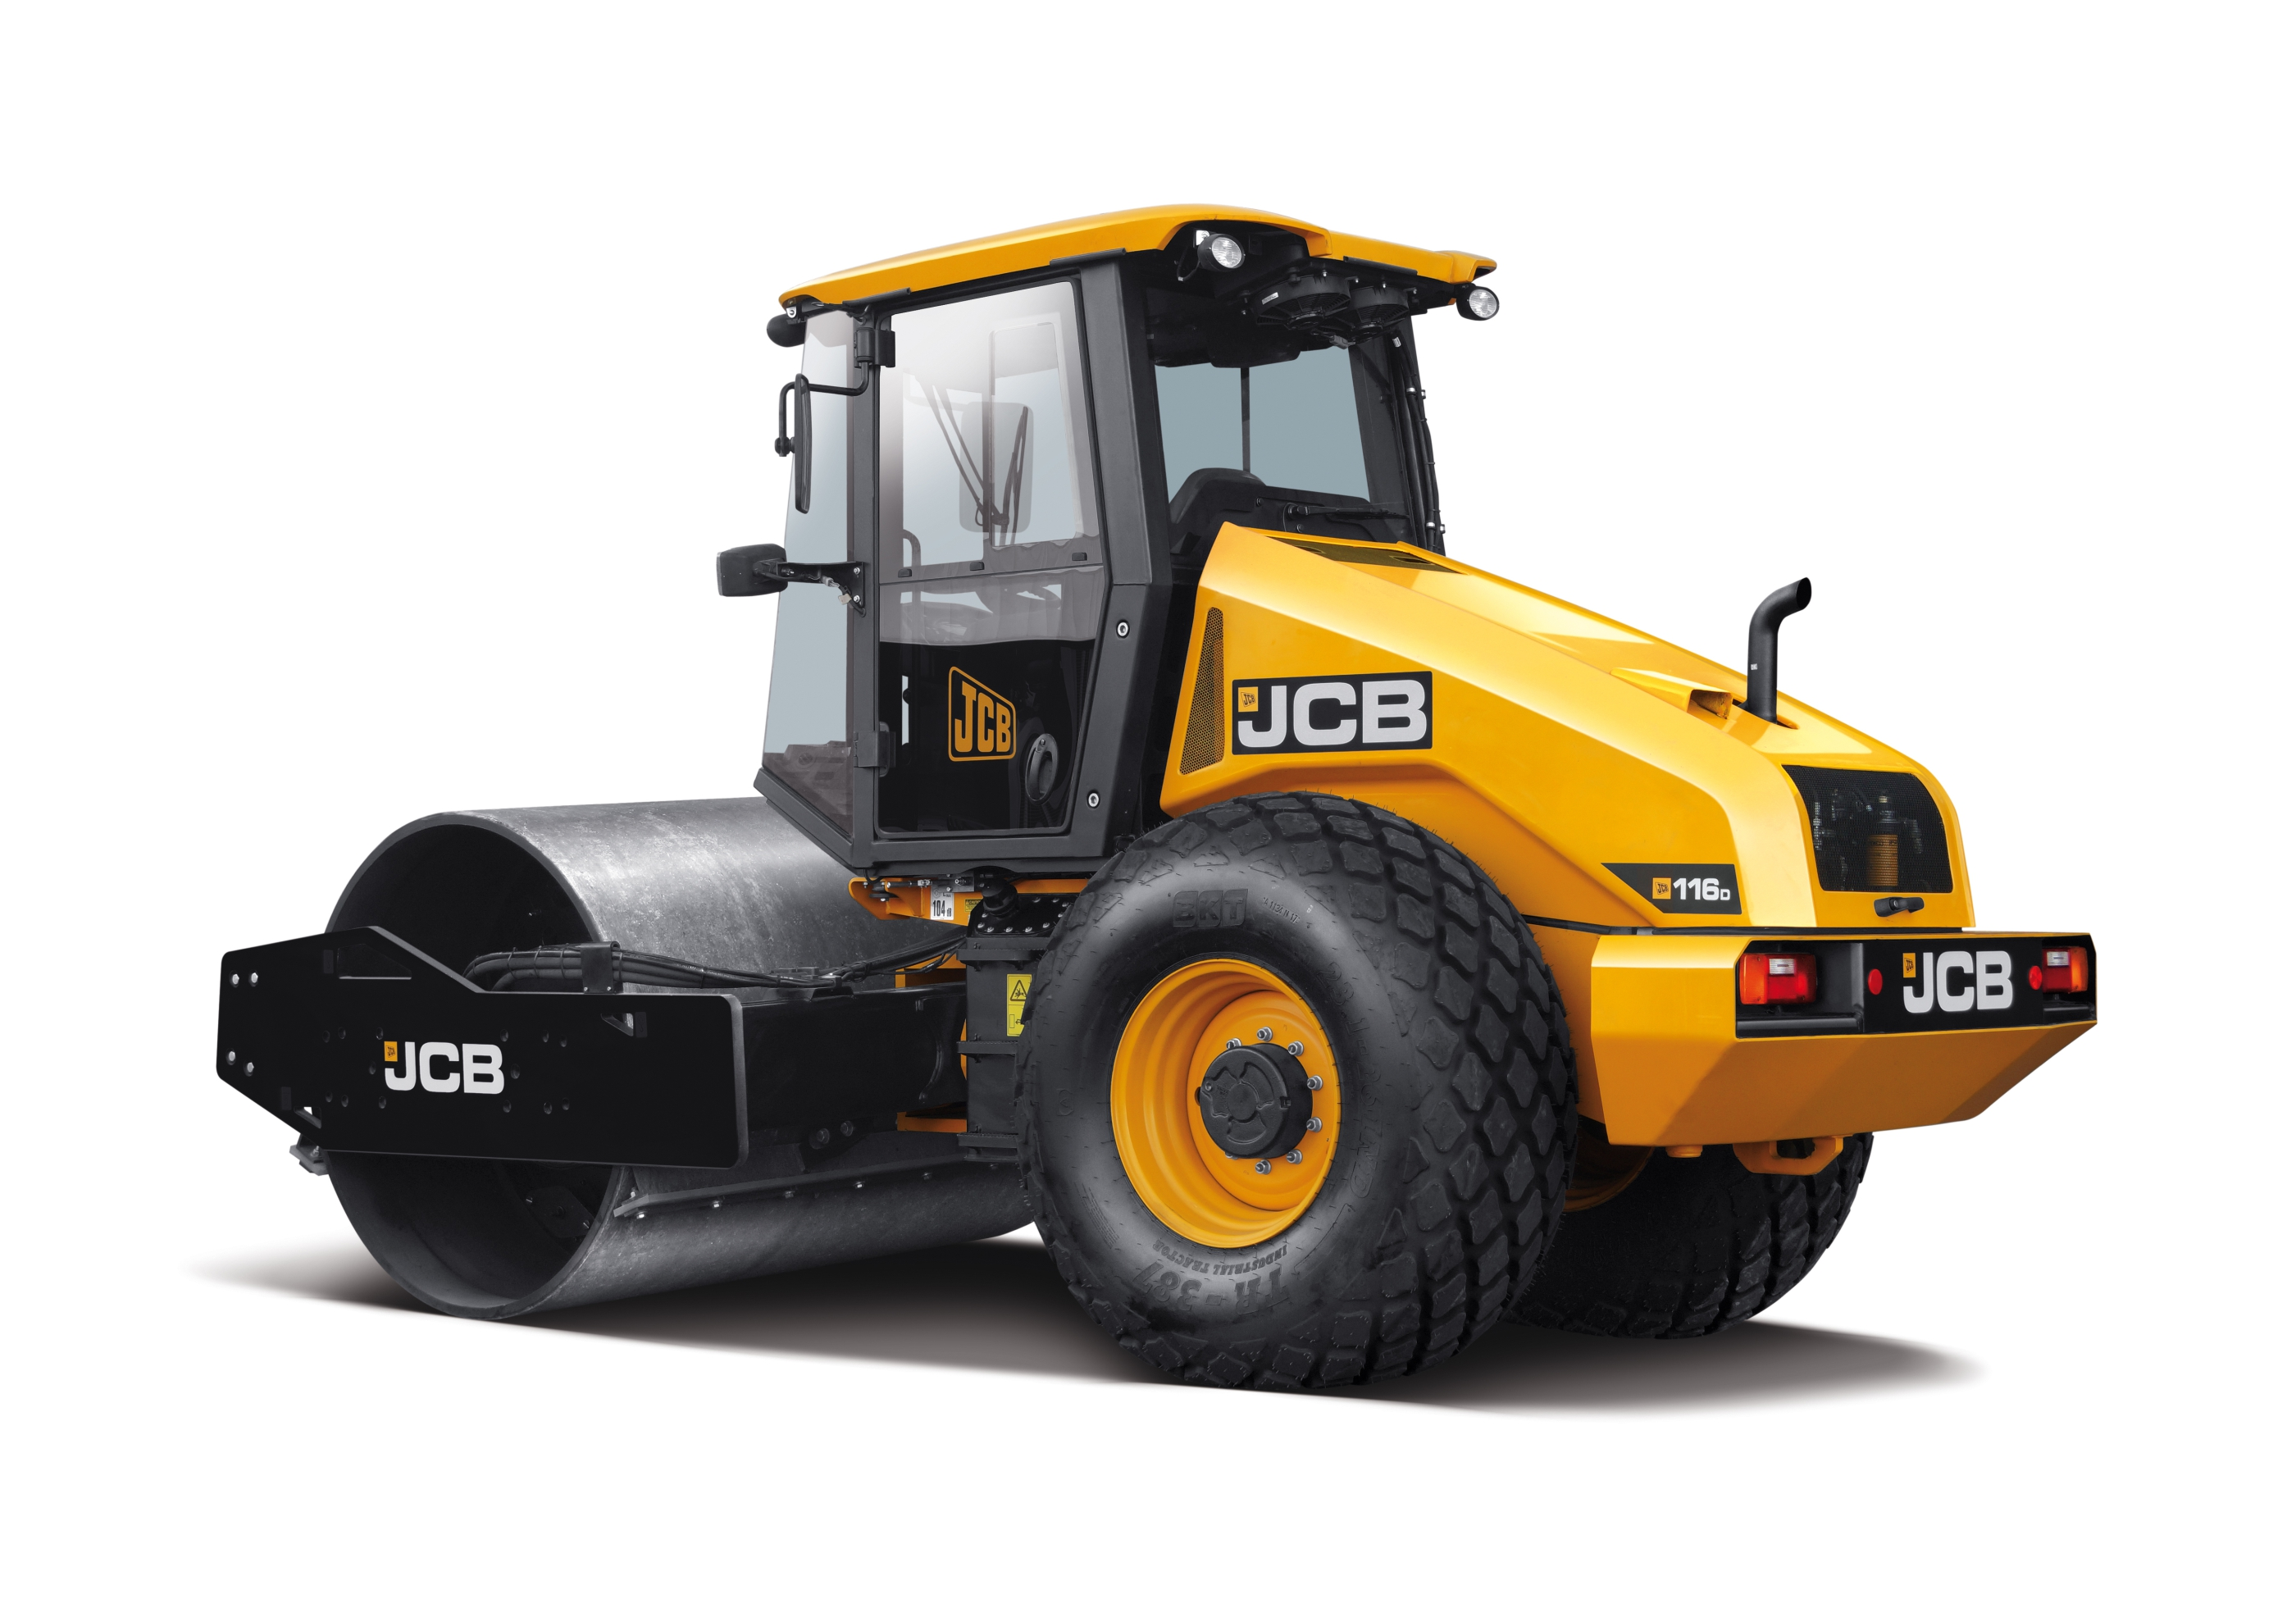 JCB 116D single drum compactor – new name, new look, same superior